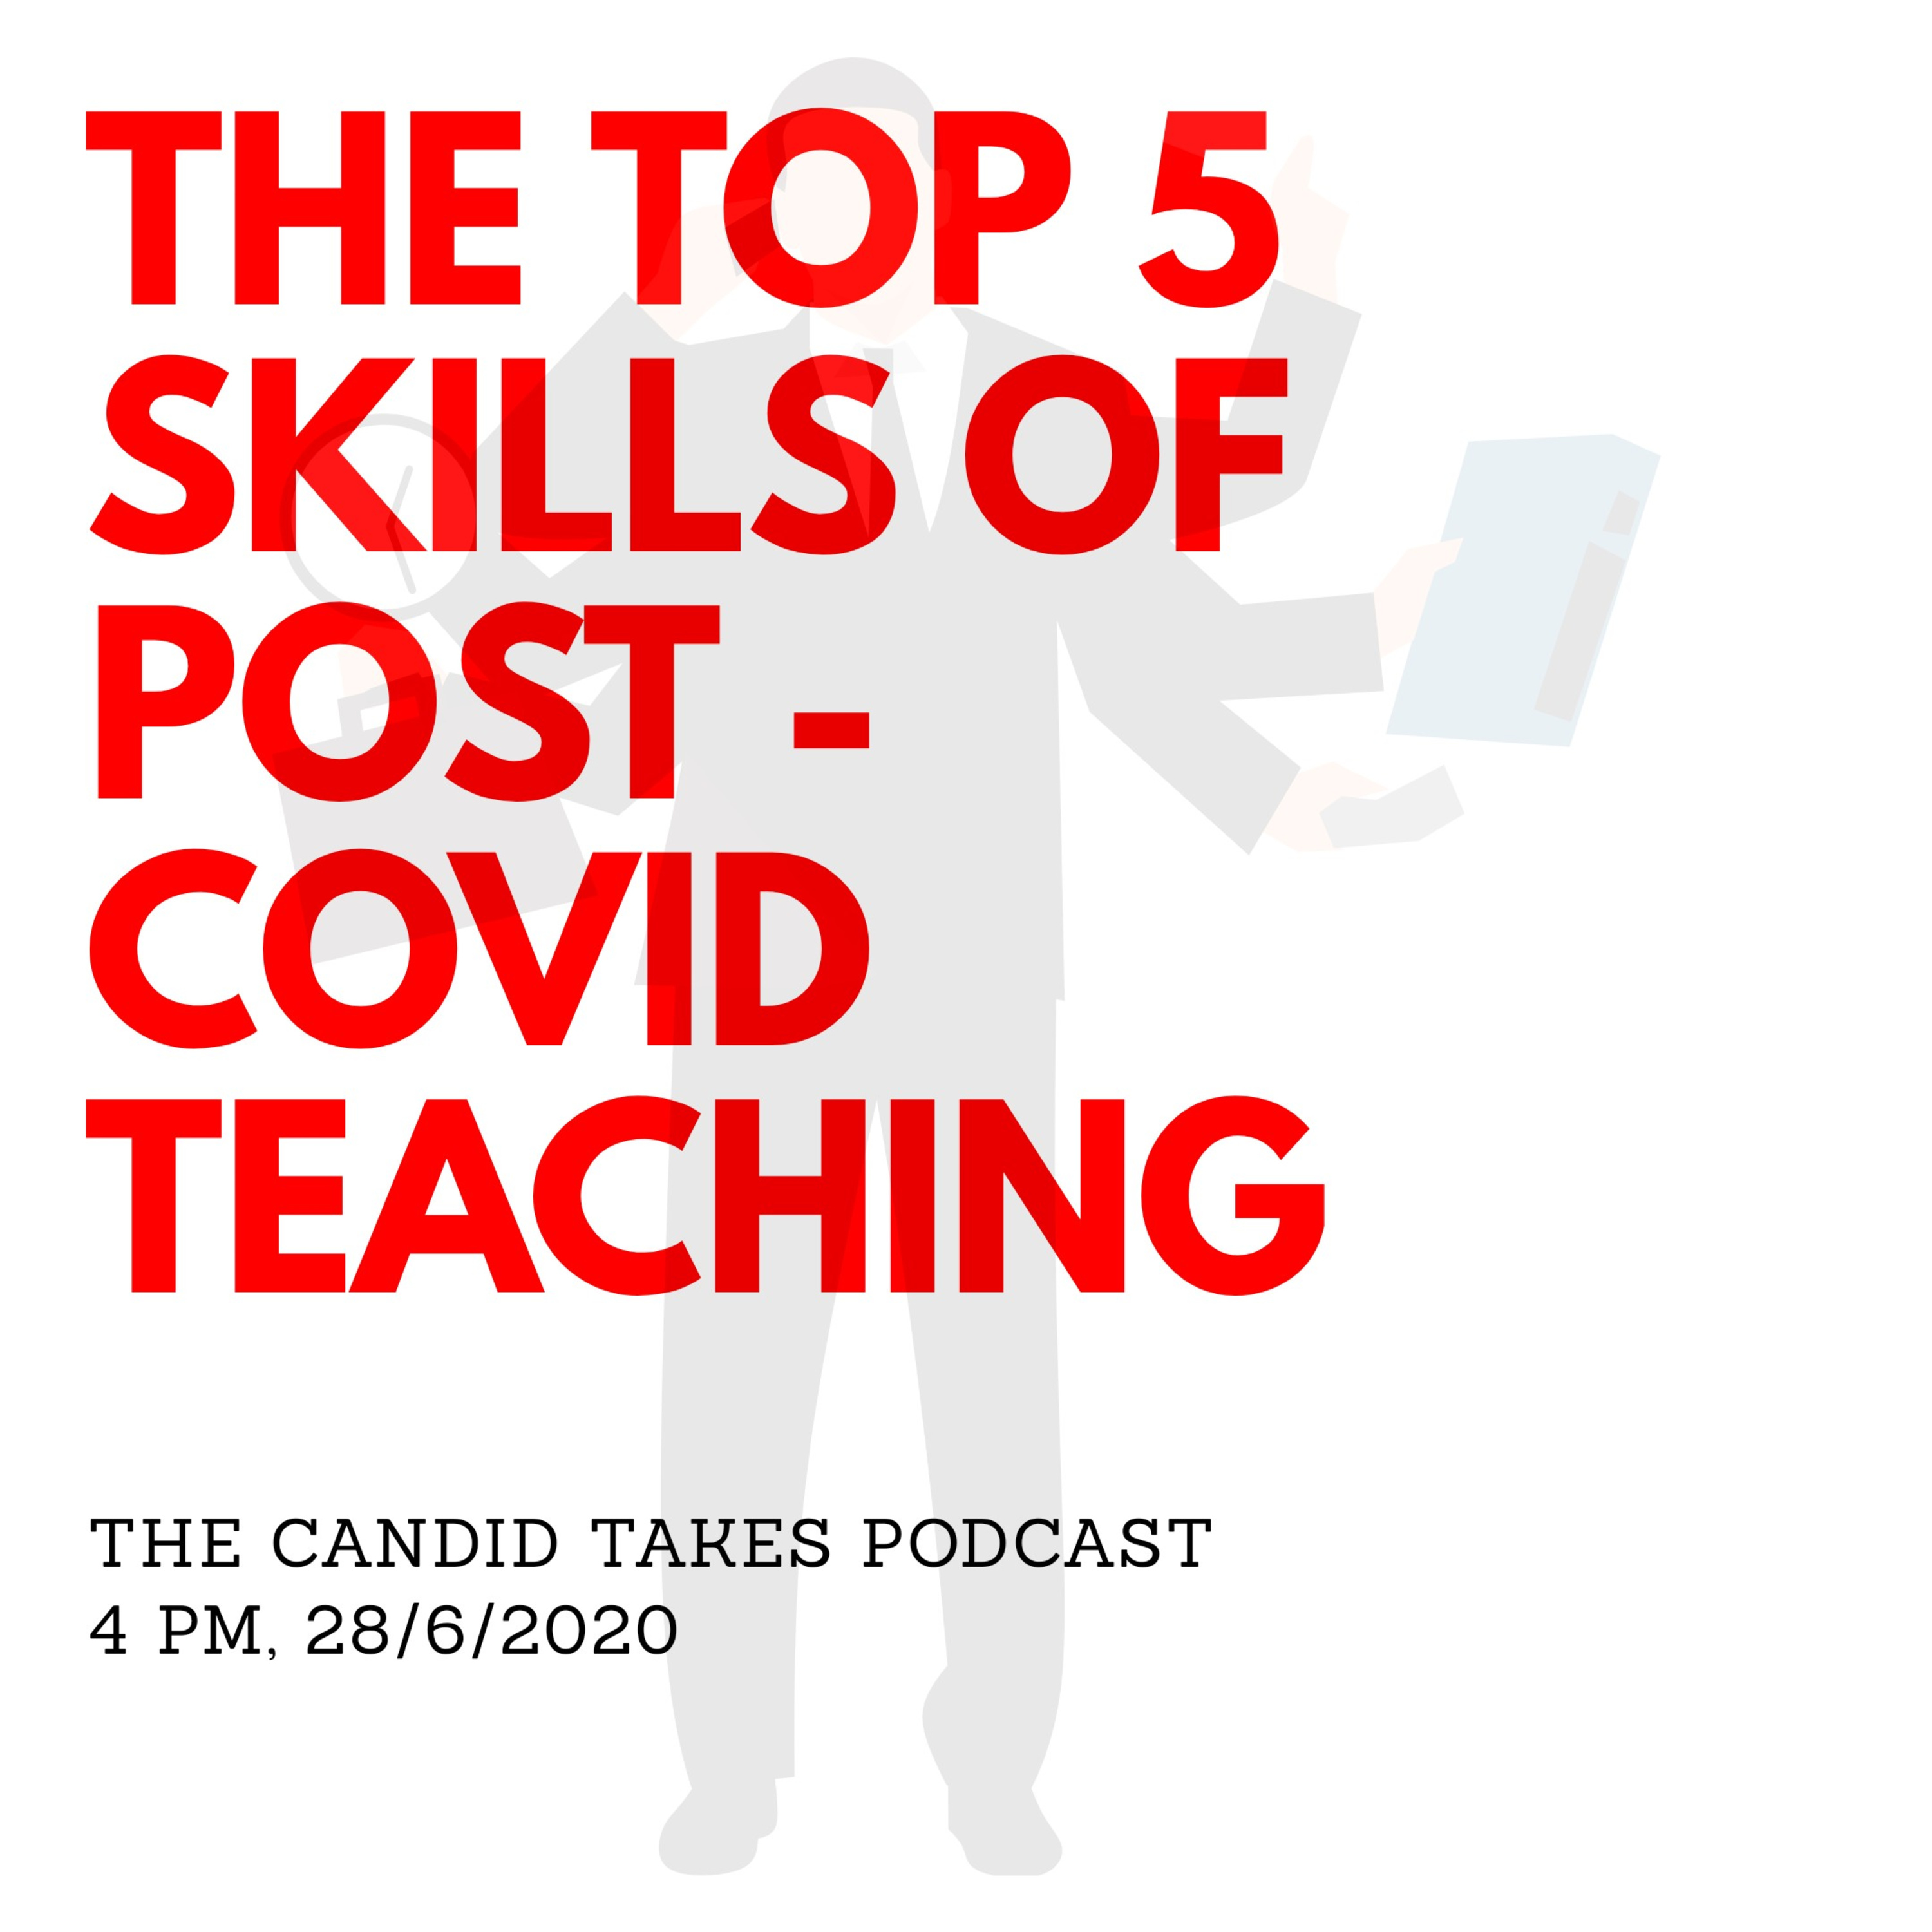 The Candid Takes Podcast on Jamit